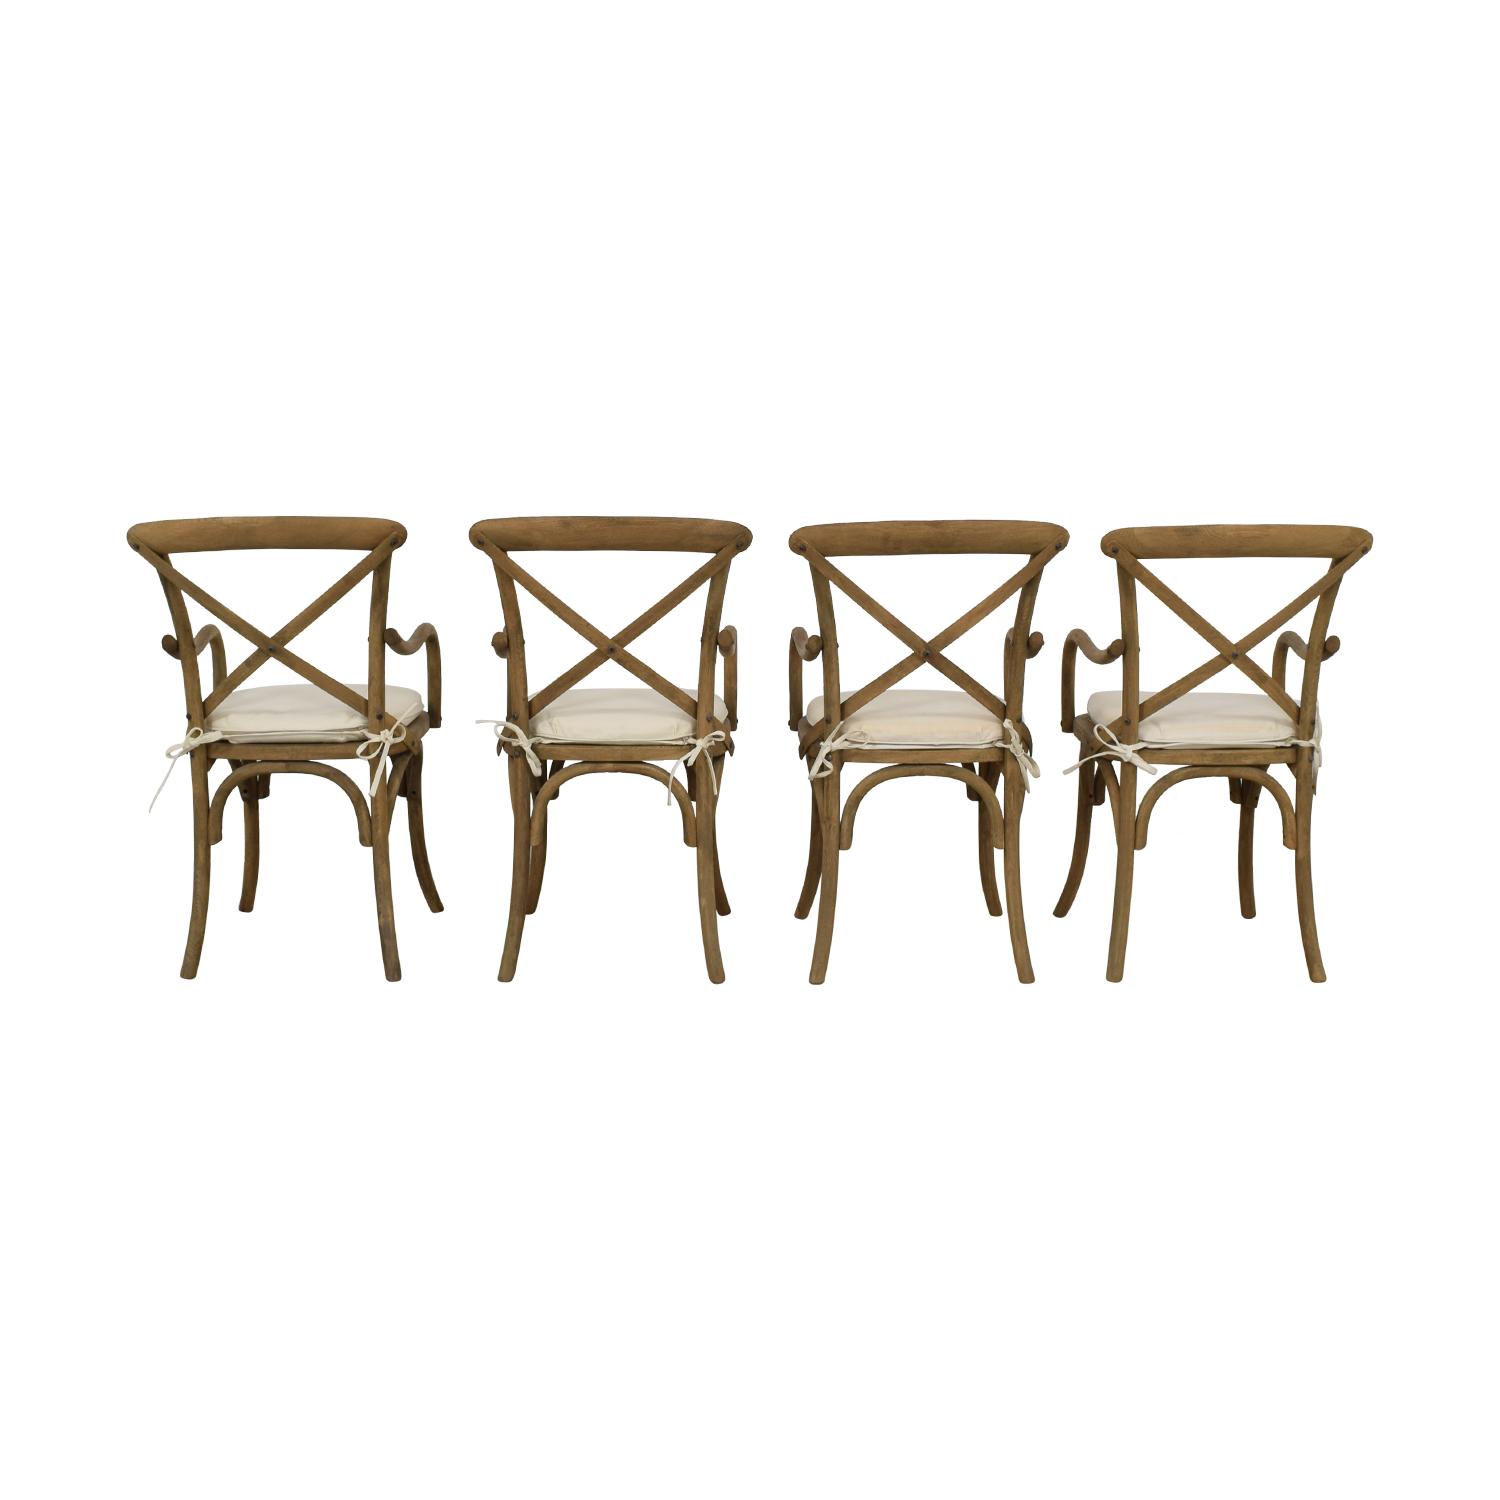 Restoration Hardware Restoration Hardware Madeleine Armchairs Rustic Natural with White Cushions second hand